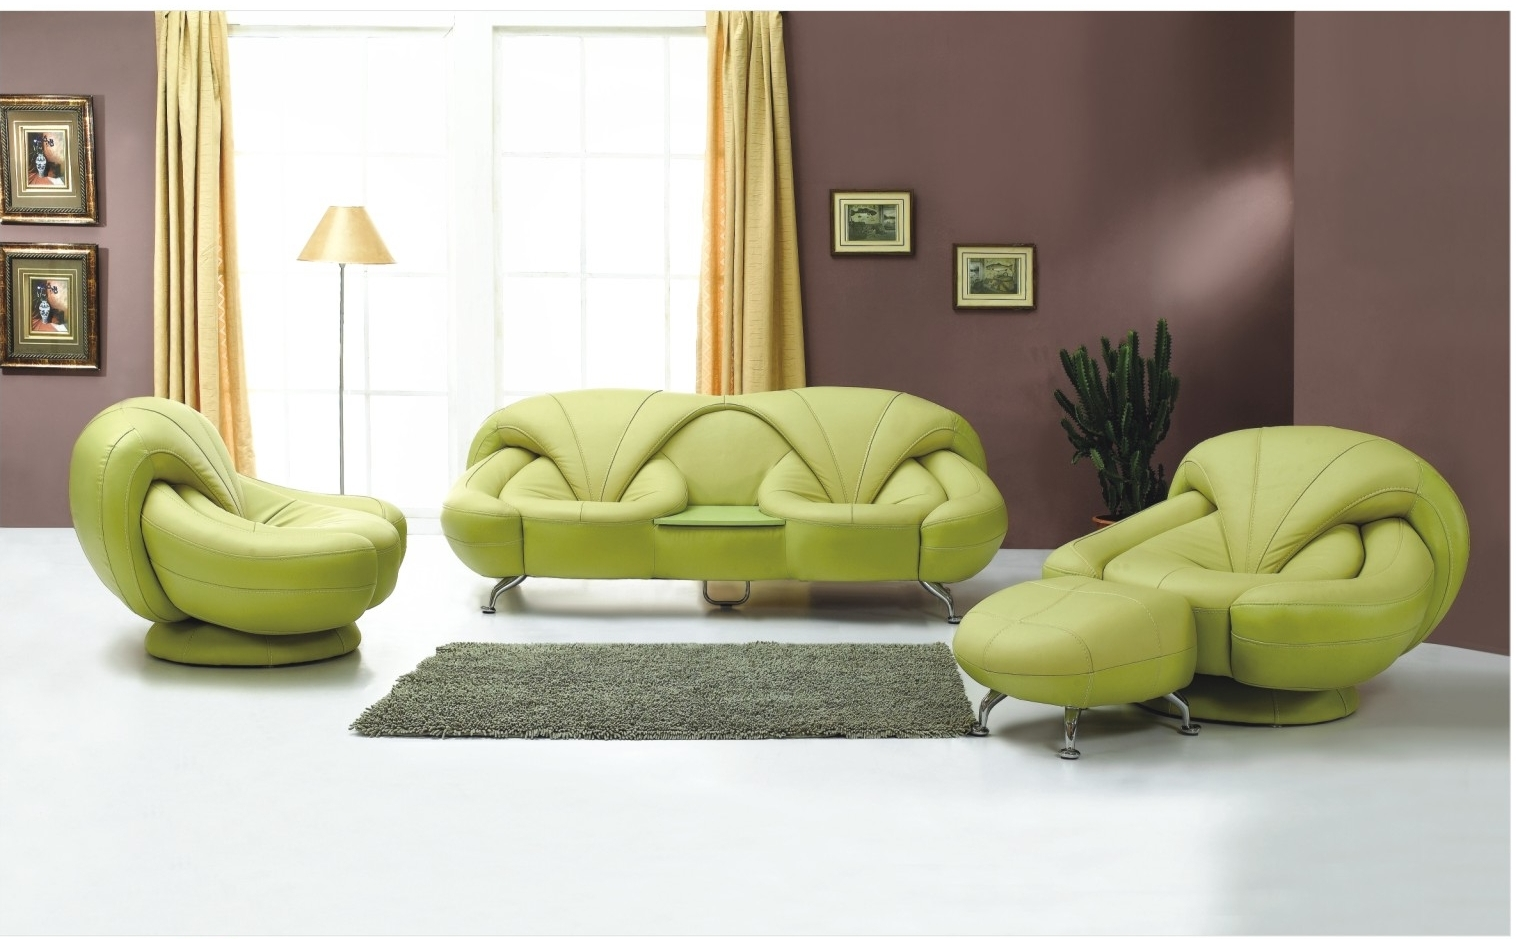 Modern living room furniture designs ideas an interior for Sofa set designs for small living room